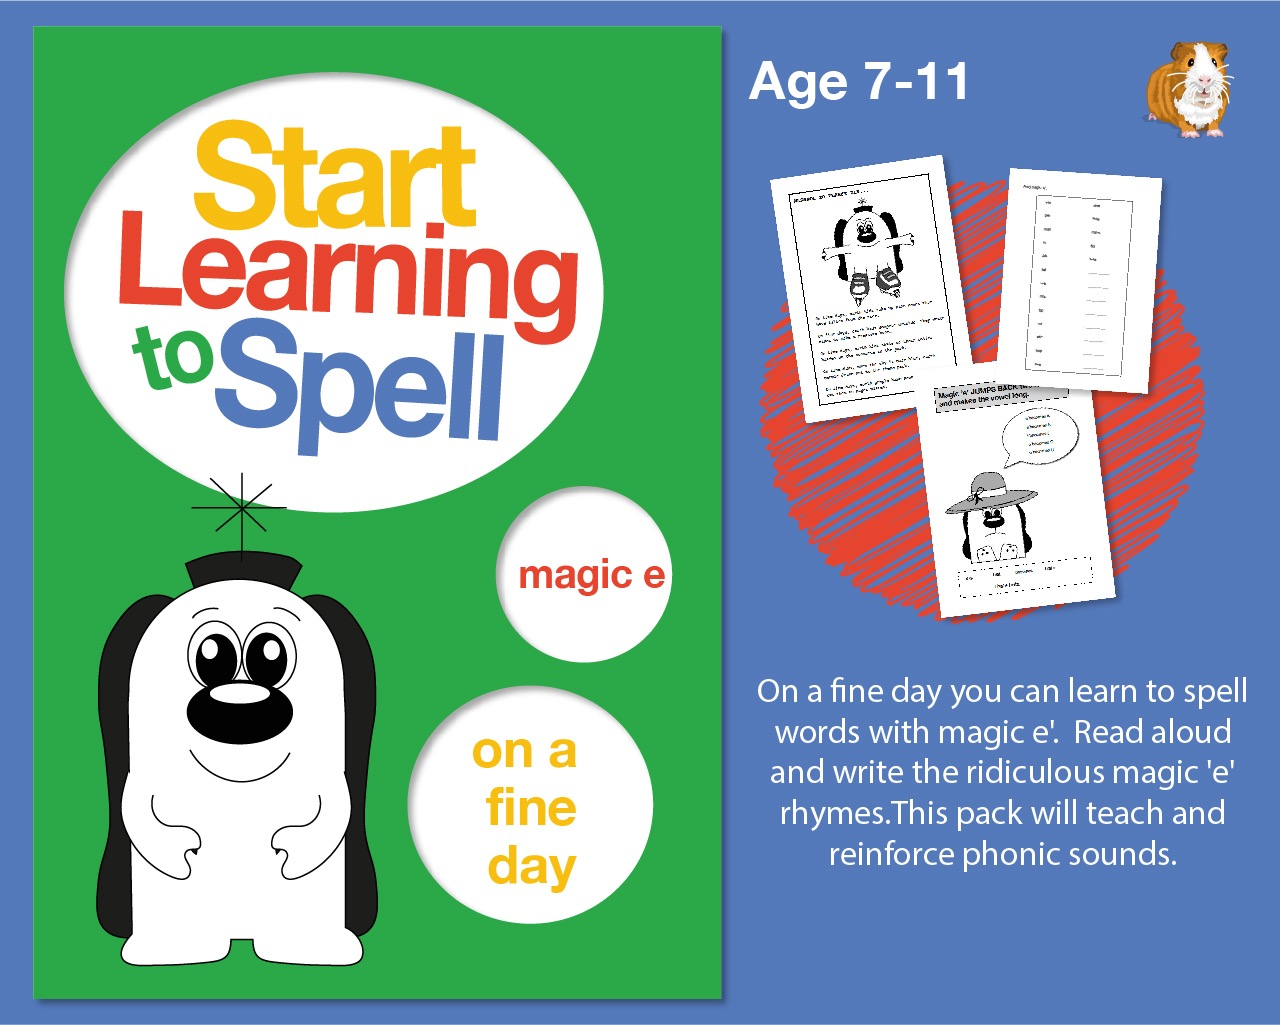 'On A Fine Day You Can Learn To Spell Words With Magic e': Learn To Spell With Phonics (7-11)